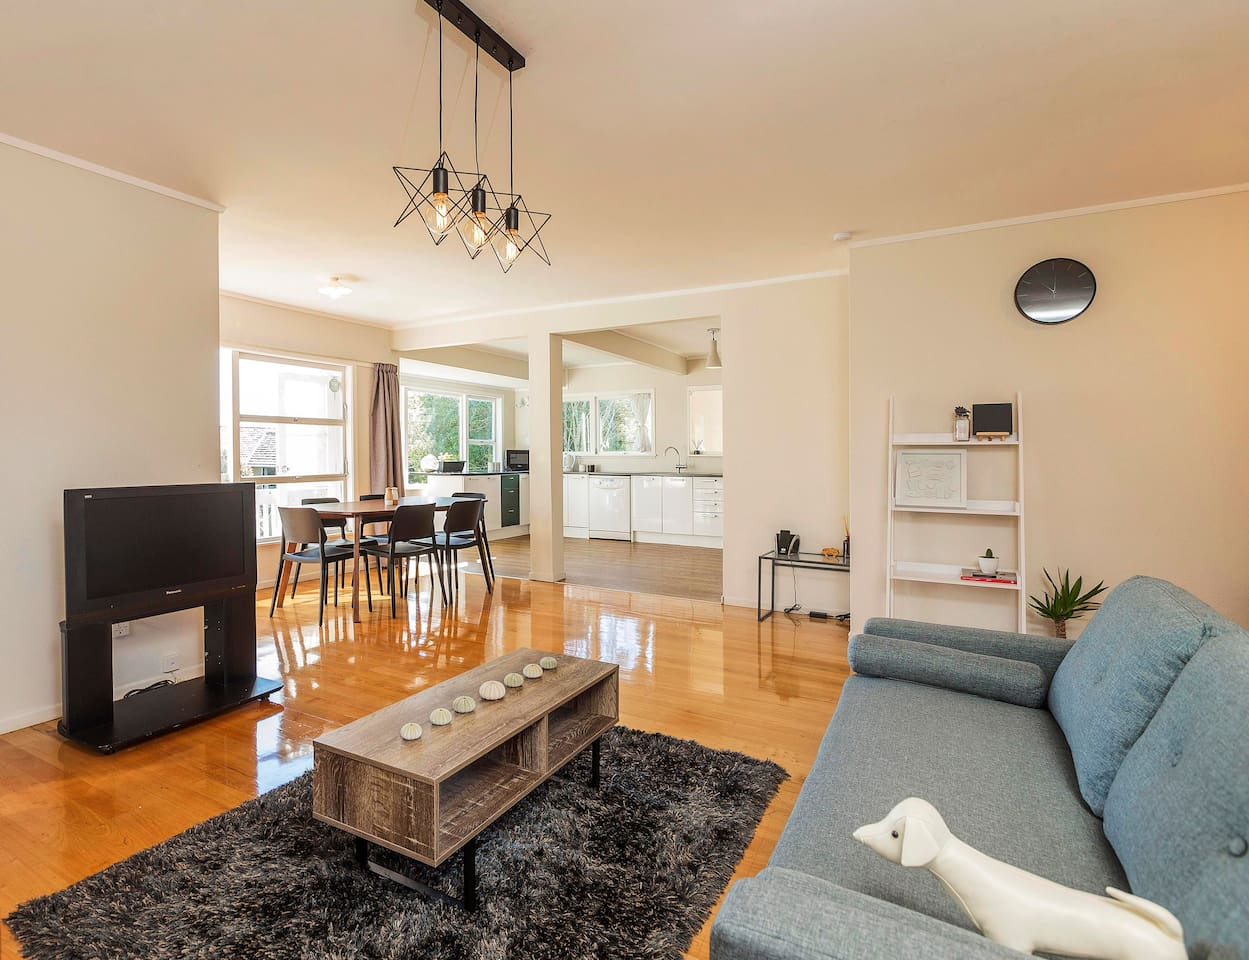 chic getaway hillcrest akl houses for rent in auckland